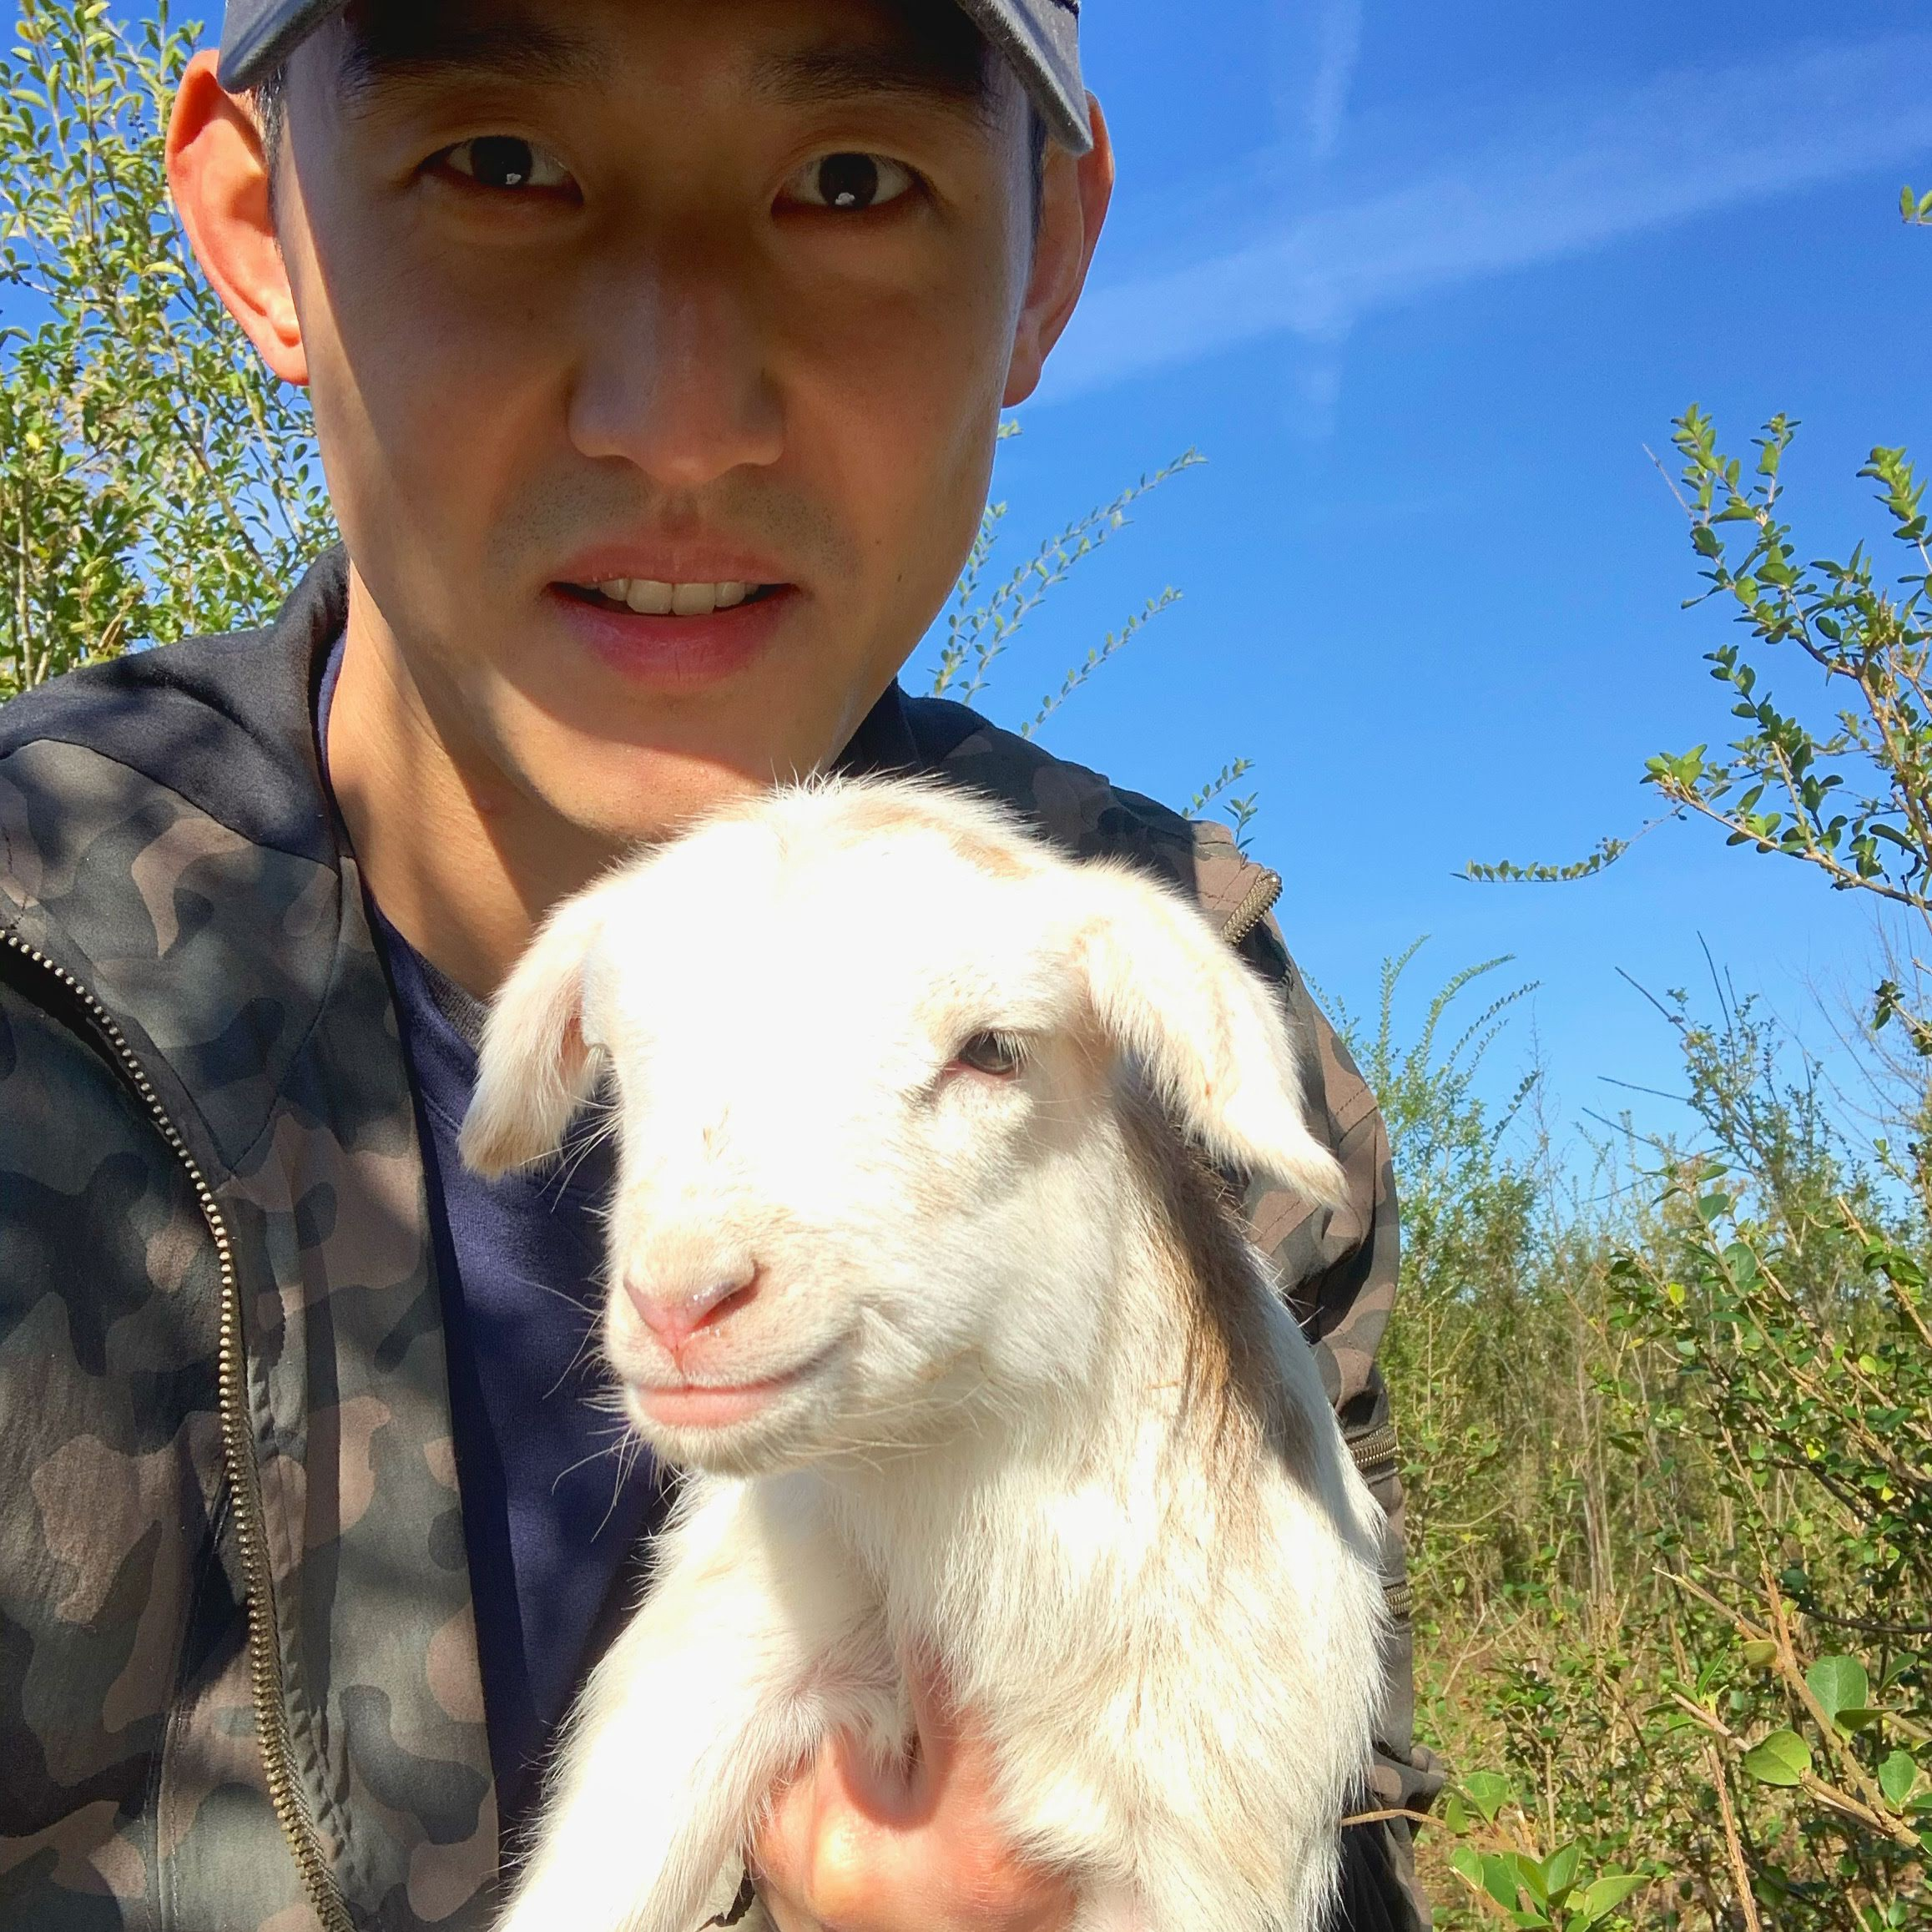 The photo of me holding a lamb that spurred a thoughtful question on Instagram.